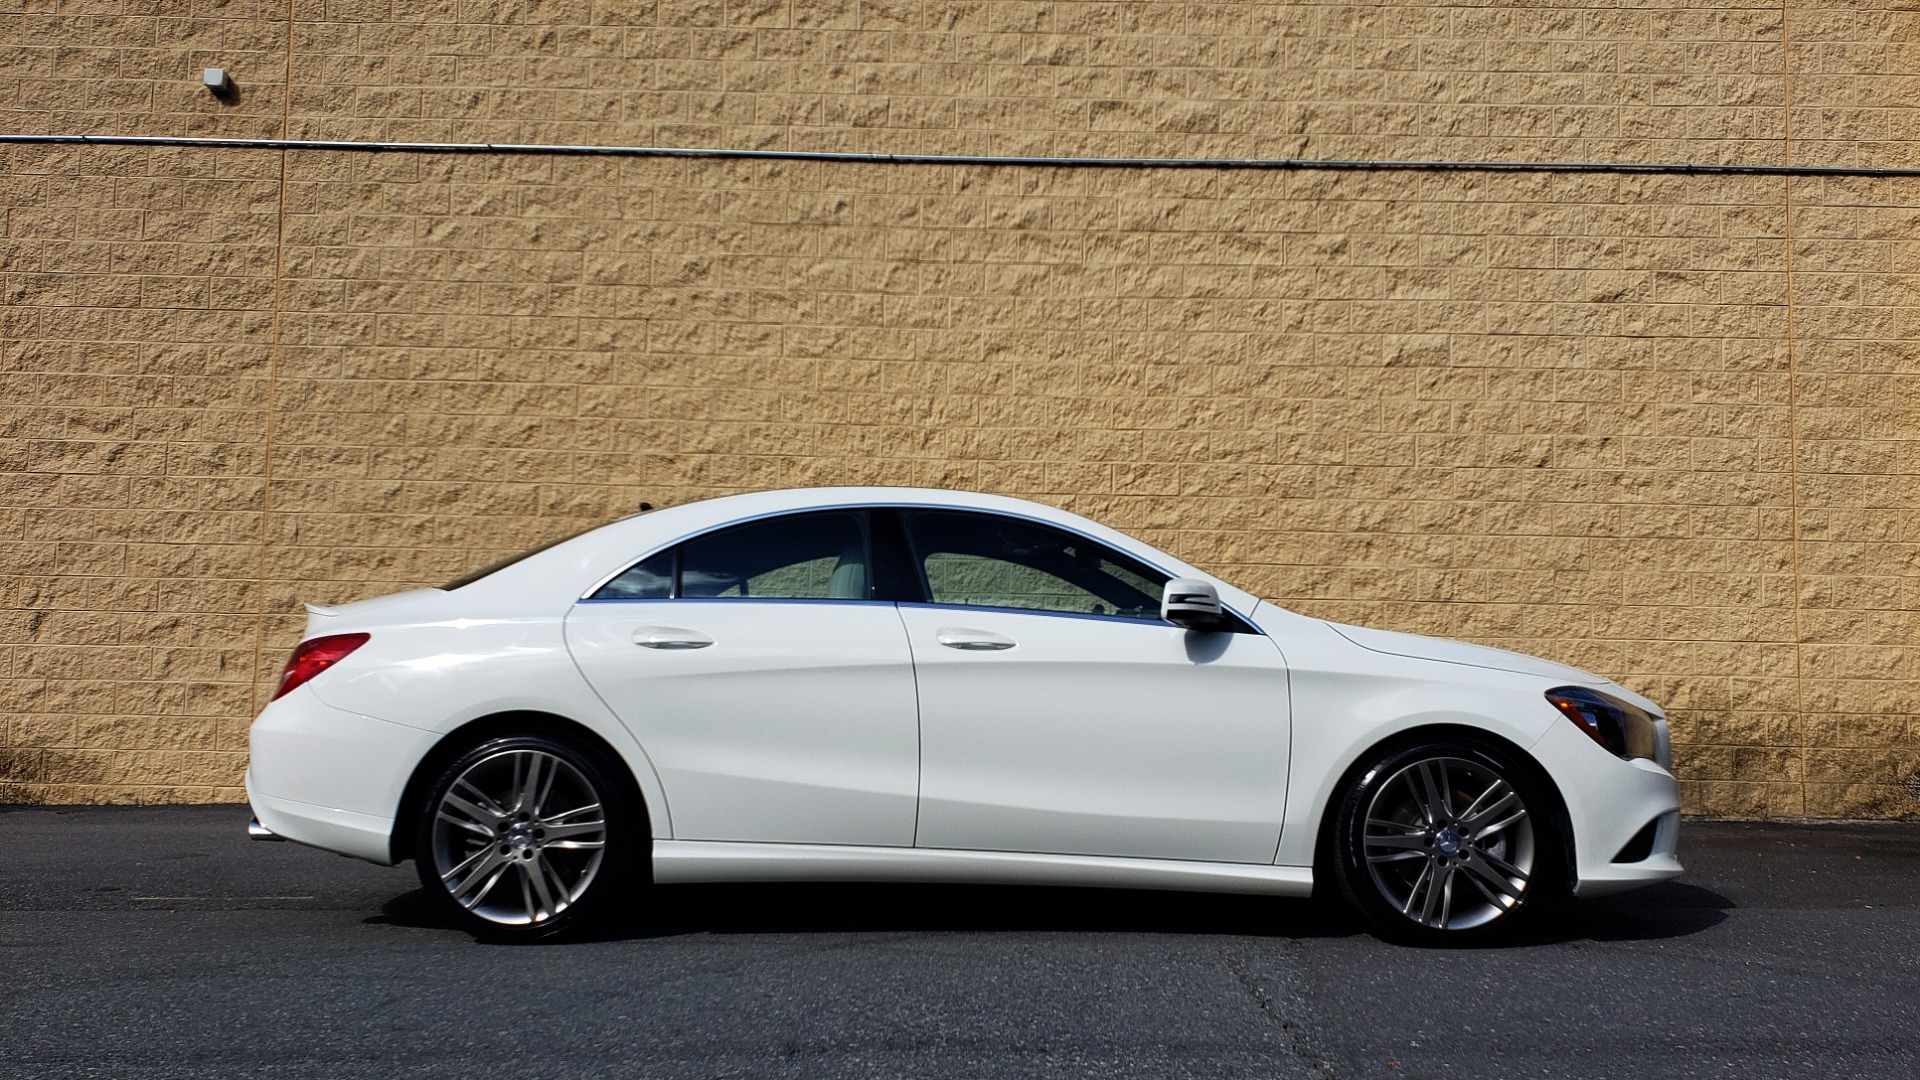 Used 2015 Mercedes-Benz CLA-Class CLA250 / FWD / SUNROOF / SPORT SUSP / CAMERA for sale Sold at Formula Imports in Charlotte NC 28227 5